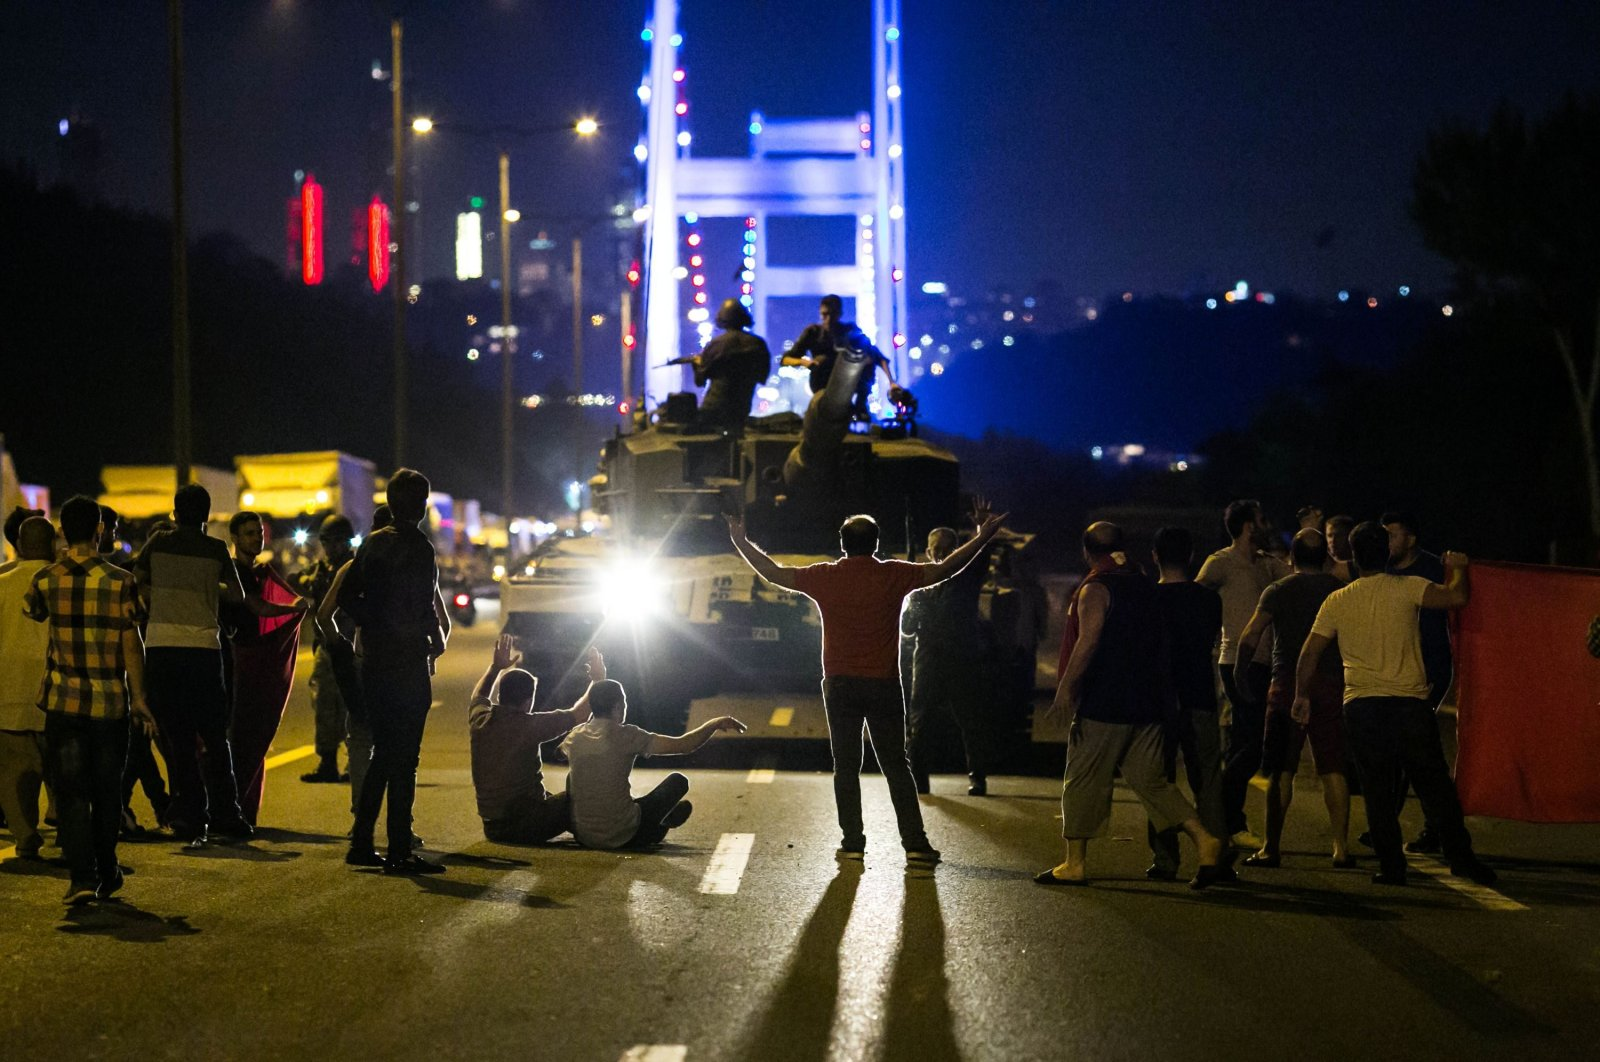 People take control of a tank near the Fatih Sultan Mehmet bridge during clashes with coup forces in Istanbul, Turkey, July 16, 2016. (AFP Photo)